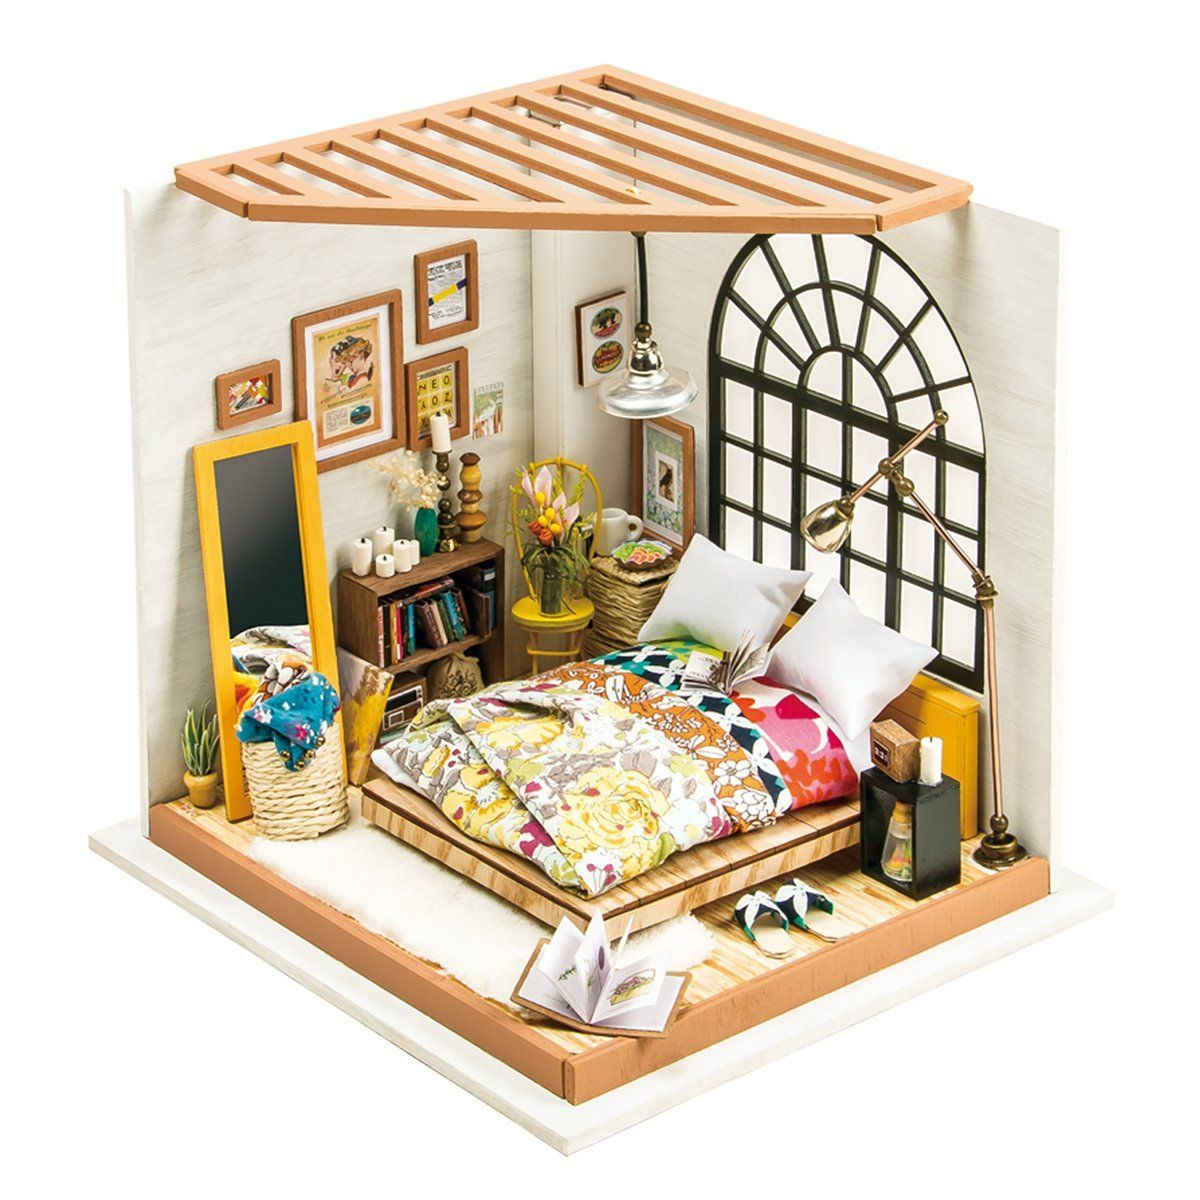 Muebles Puzzle Kit - Robotime Wooden Bedroom Dolls House Furniture And Accessories [mjhdah]https://www.dhresource.com/0x0s/f2-albu-g3-M00-EB-41-rBVaHFonDoaANa0RAALXJ8XVuC4188.jpg/wholesale-baby-room-home-decoration-doll.jpg